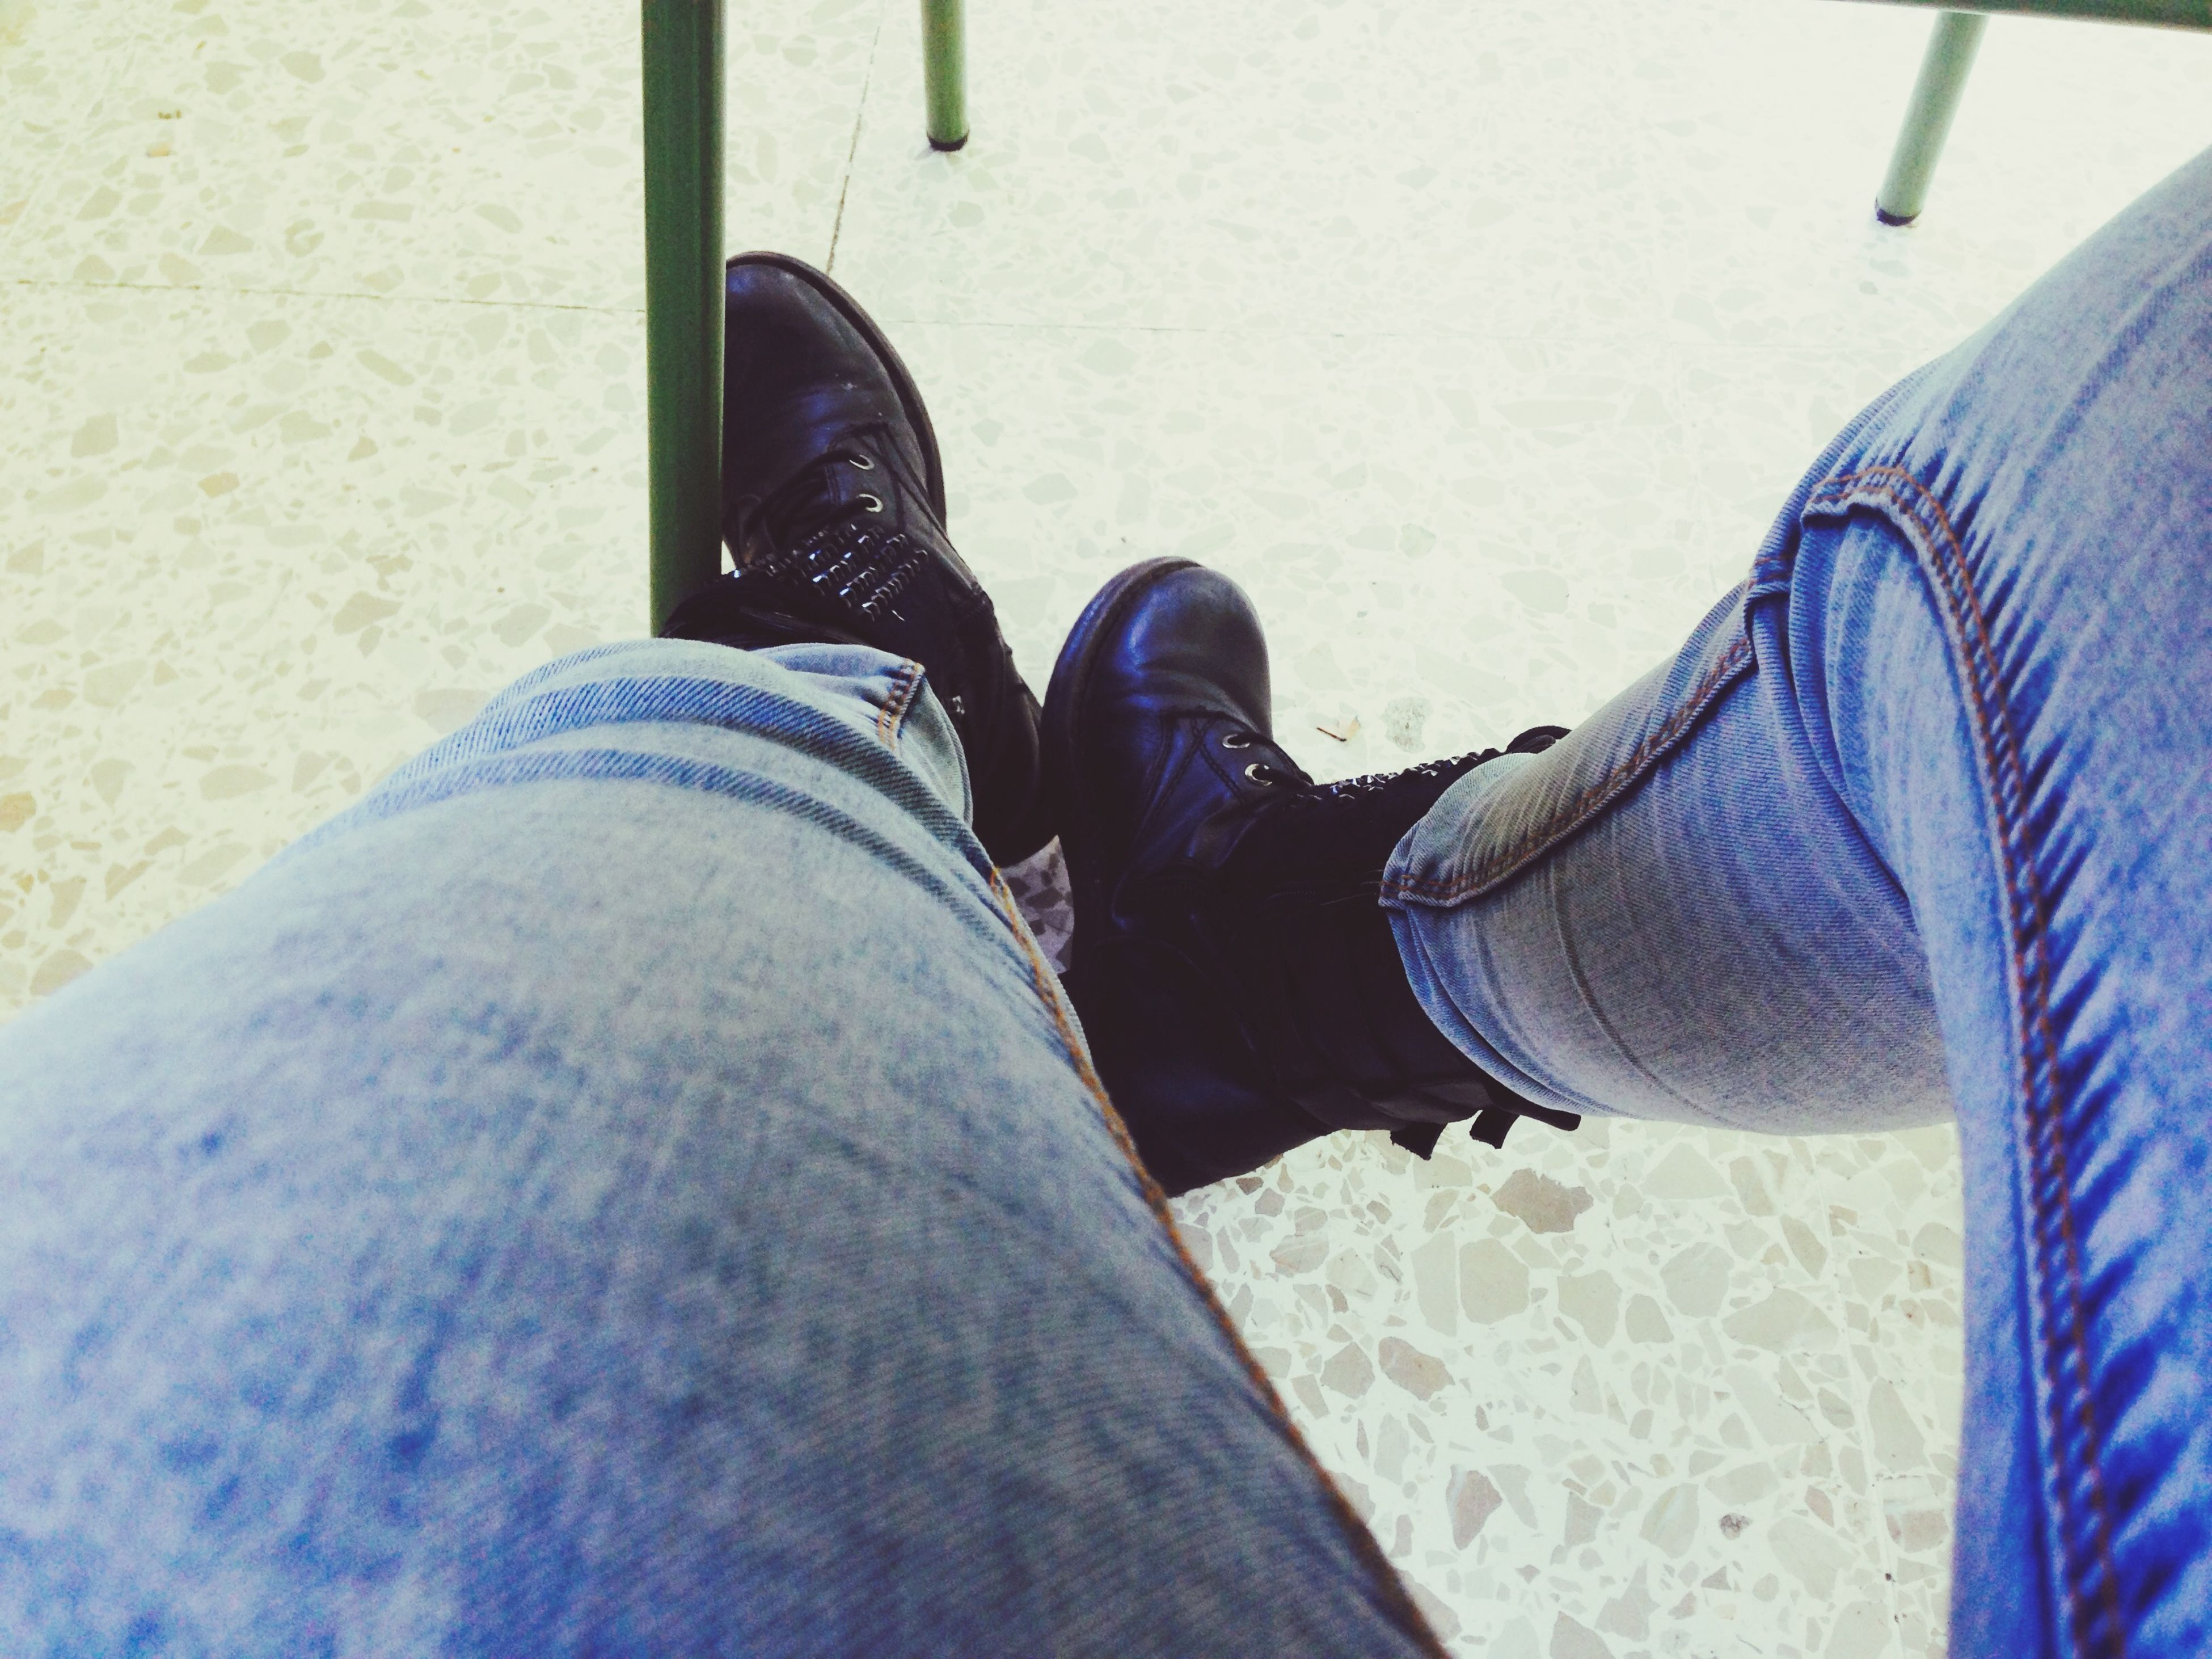 low section, person, shoe, personal perspective, jeans, footwear, lifestyles, human foot, relaxation, men, sitting, standing, part of, close-up, leisure activity, day, legs crossed at ankle